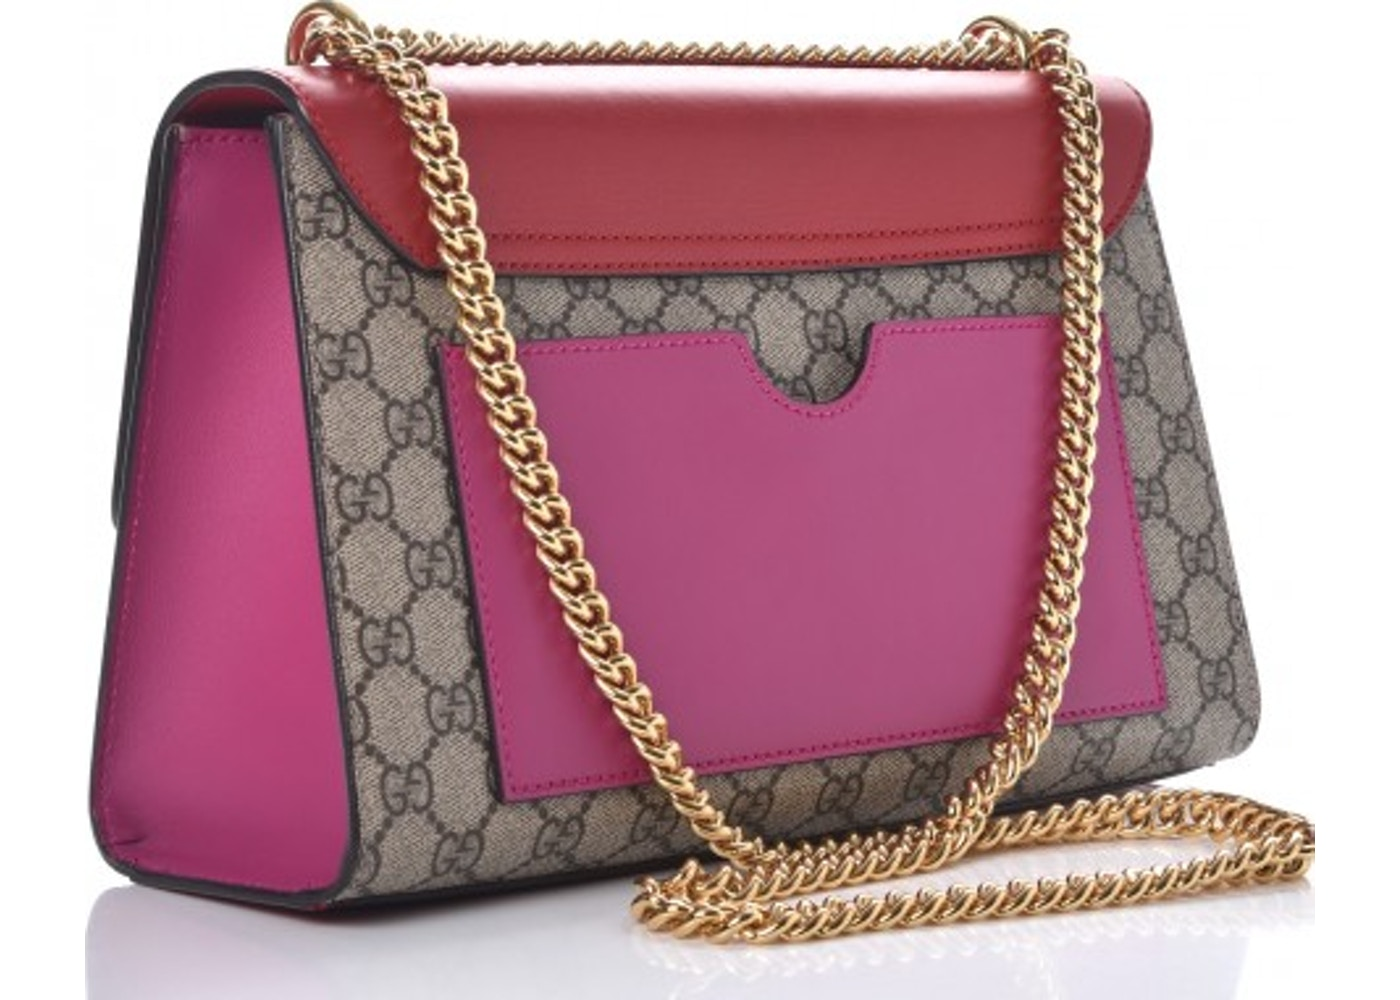 b34e1d95b2f9 Gucci Padlock Monogram GG Supreme Multicolor Medium Hibiscus Pink/Red/Brown